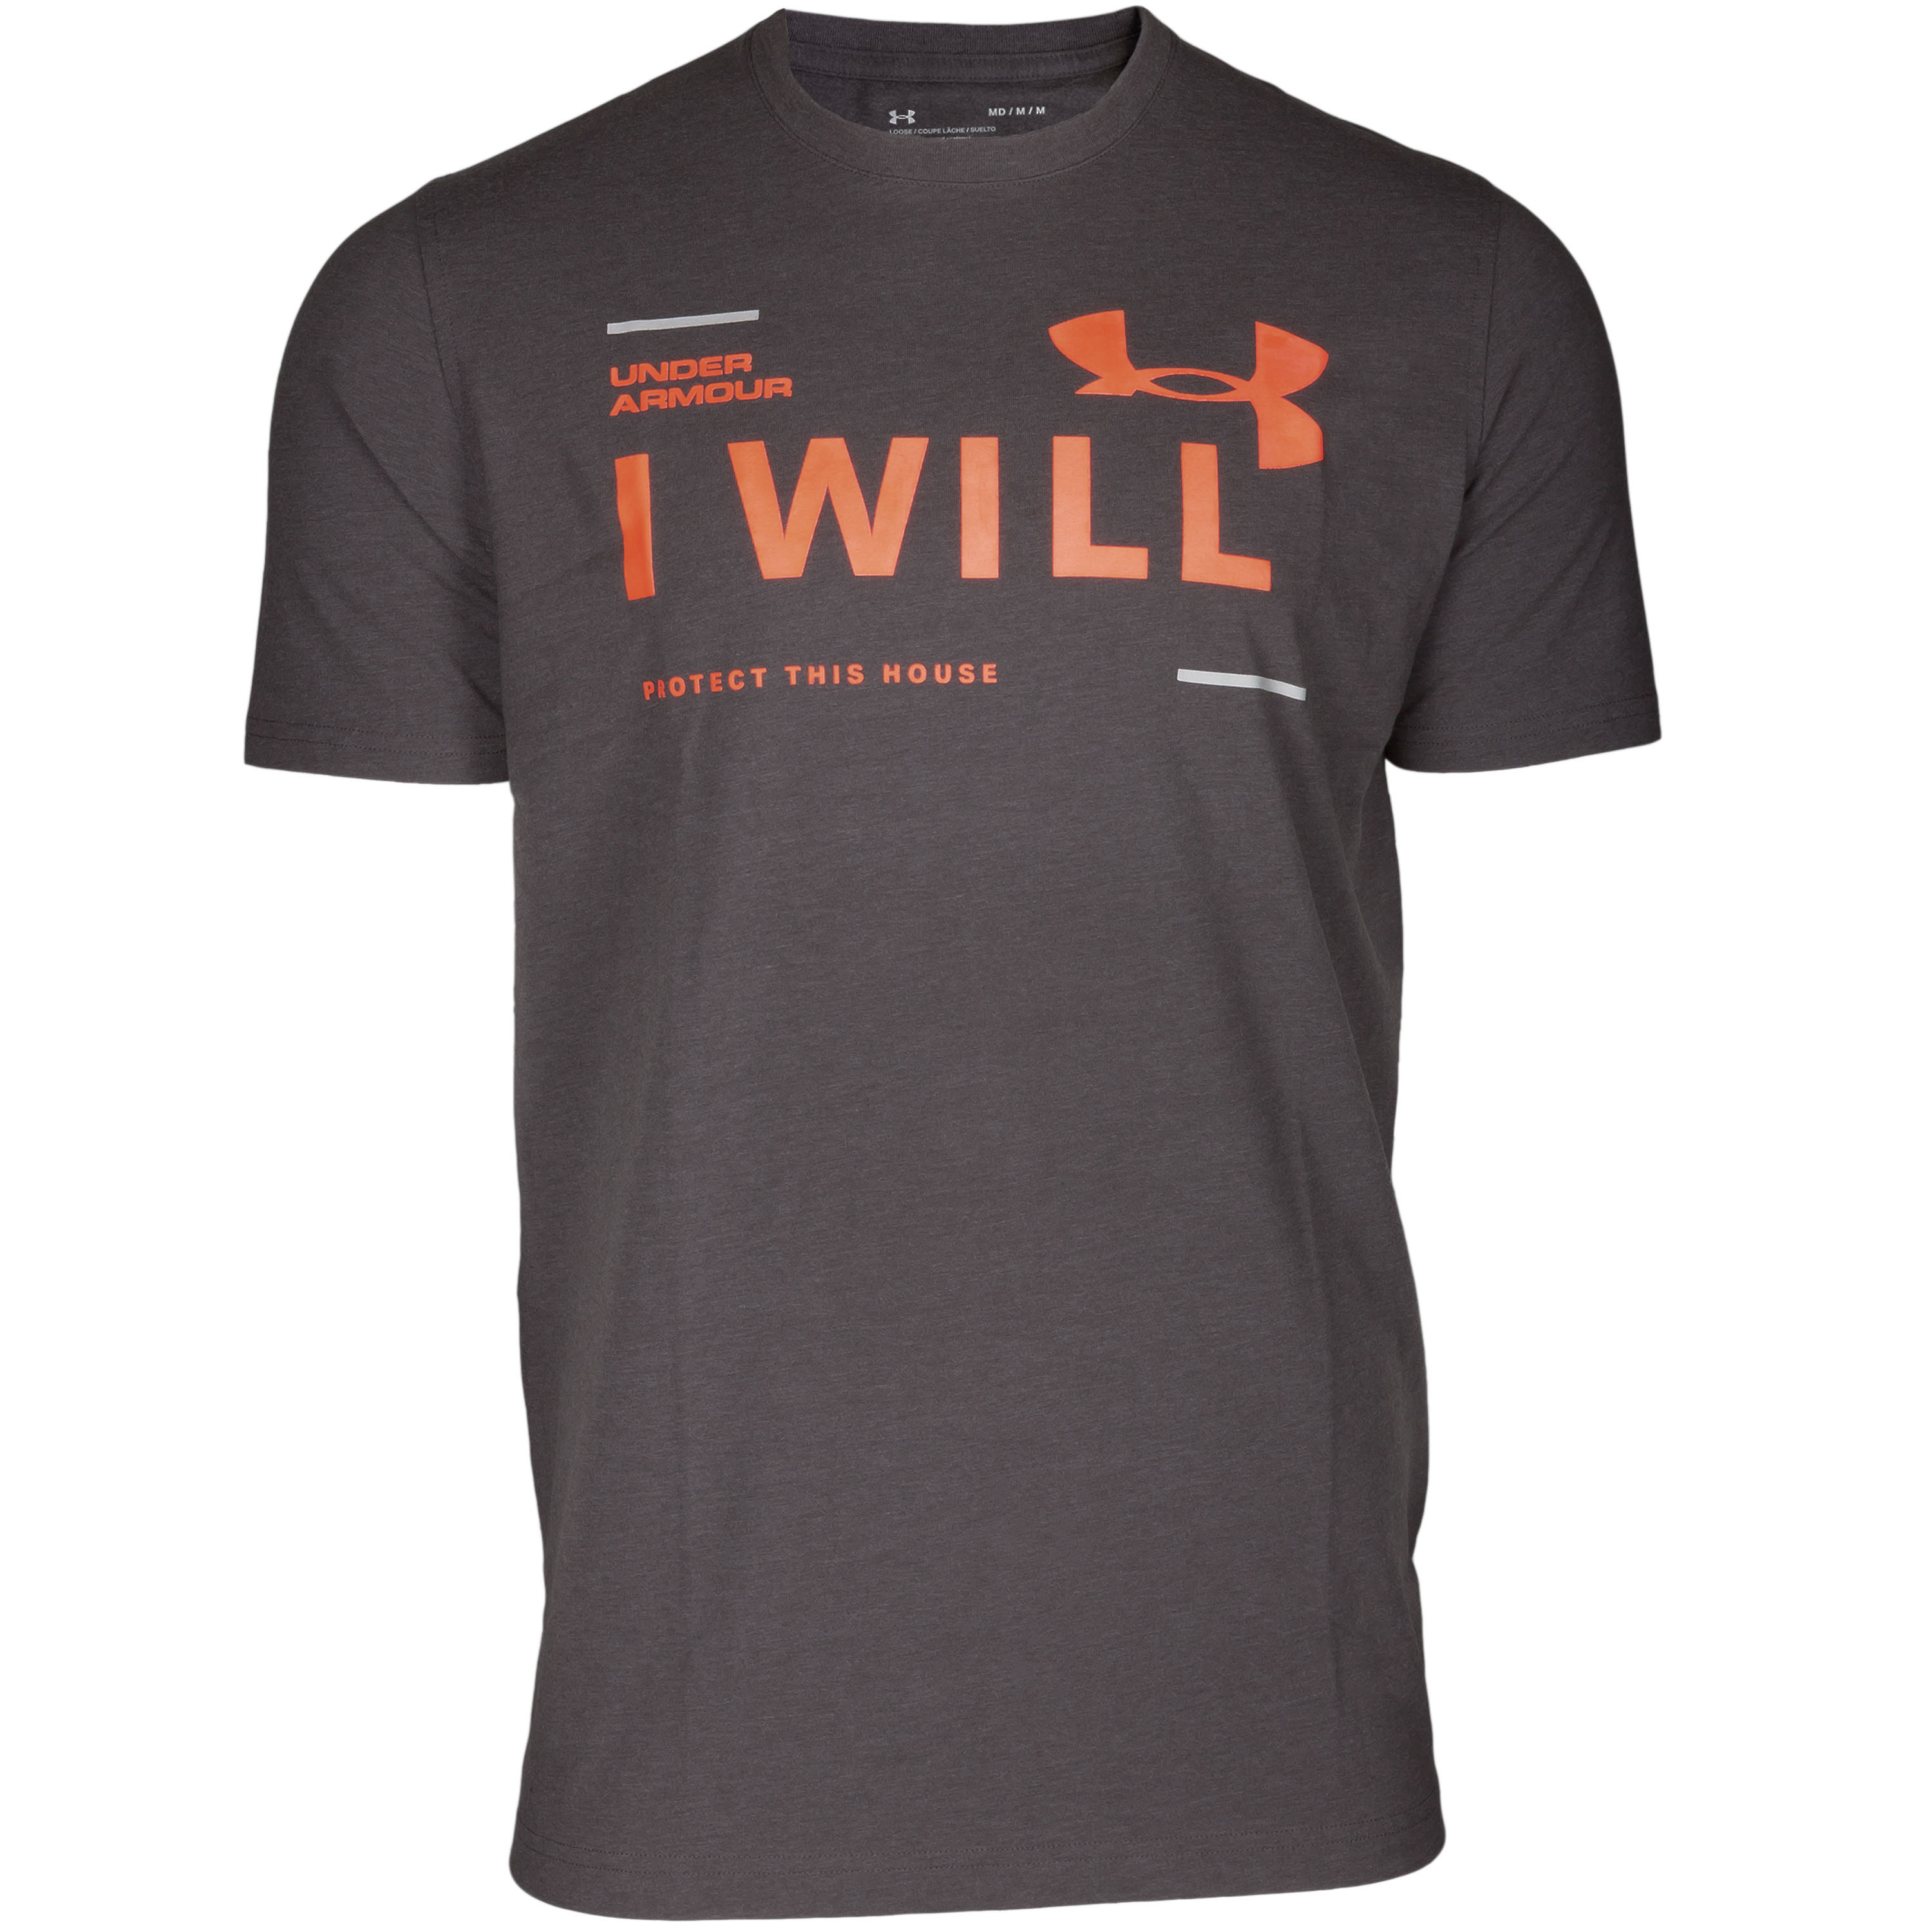 Under Armour Shirt I Will gray/red